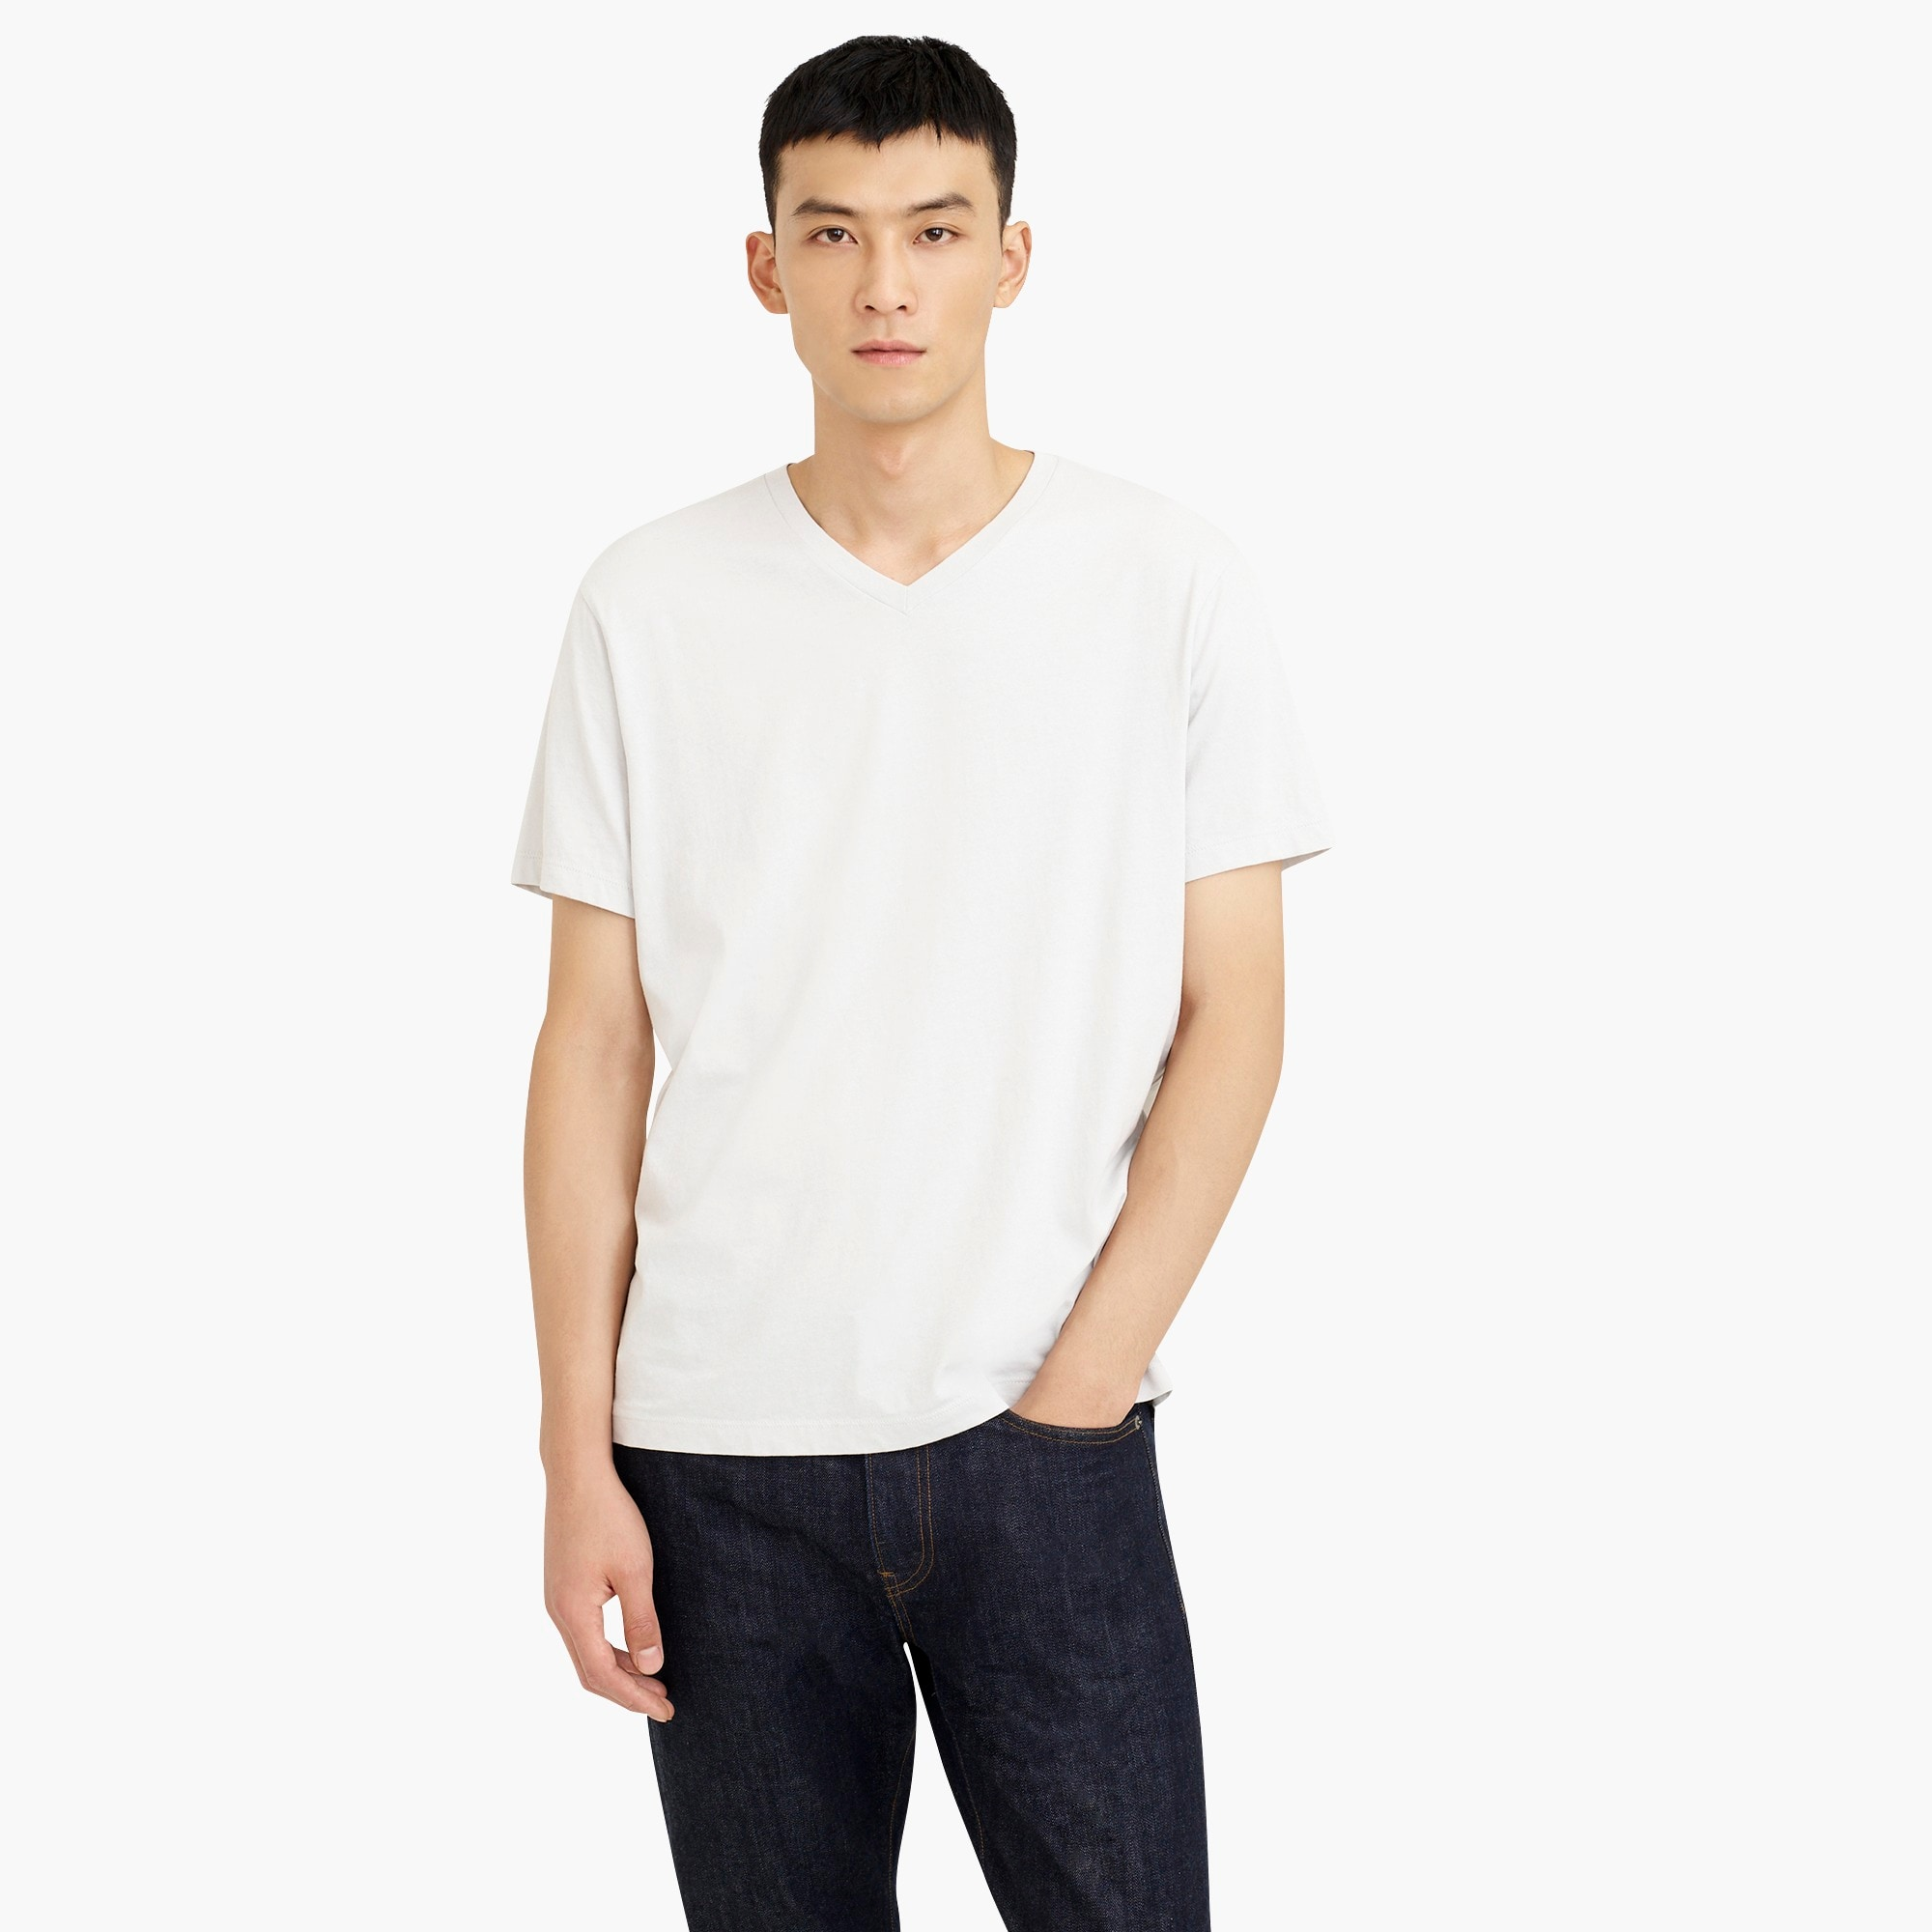 J.Crew Mercantile Broken-in V-neck T-shirt